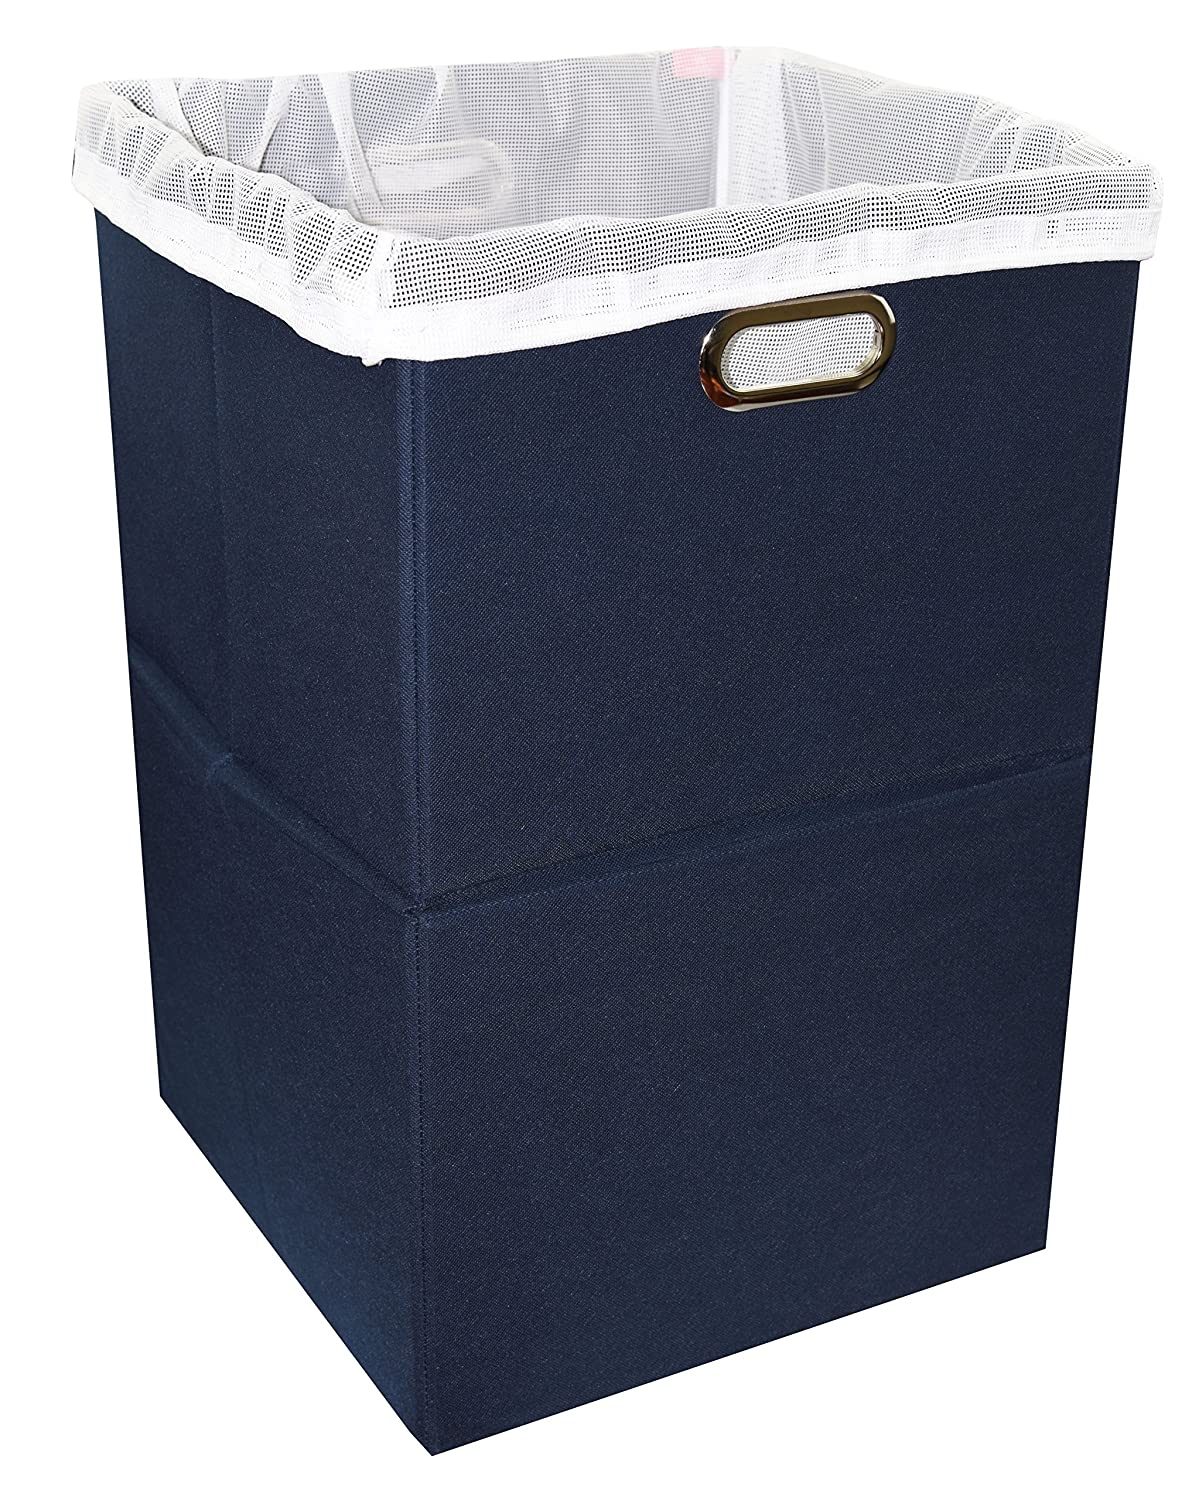 Premium Foldable Large Laundry Hamper with Laundry Bag - Durable Non-Woven Fabric, Anti-Mold Plastic Board, Extra-Large Size, Space-Saving & Compact Clothes Basket with Metal Handles (Navy Blue)